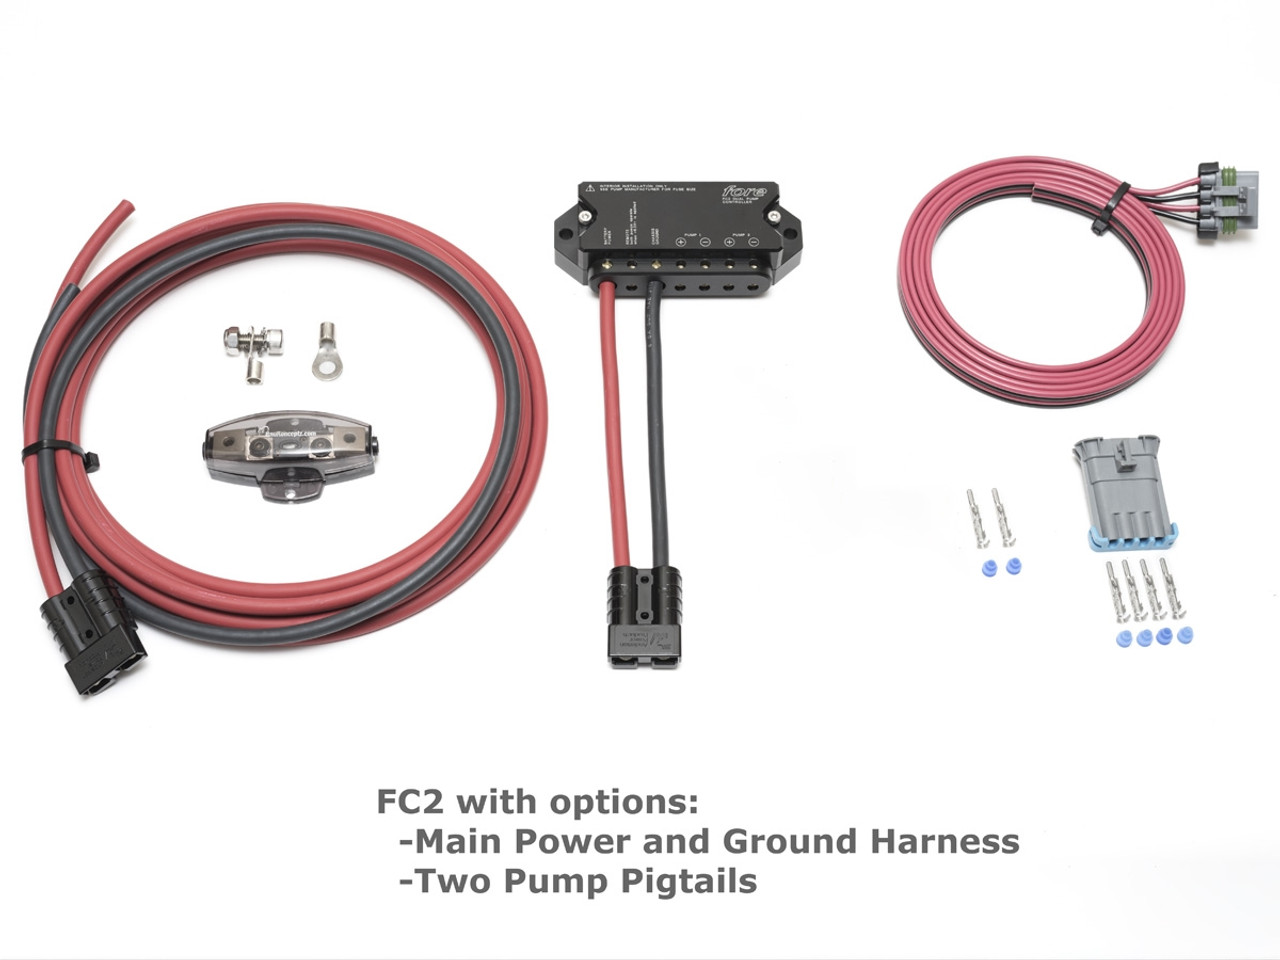 hight resolution of fore innovations fc2 corvette dual fuel pump controller with harness pigtails vette lab